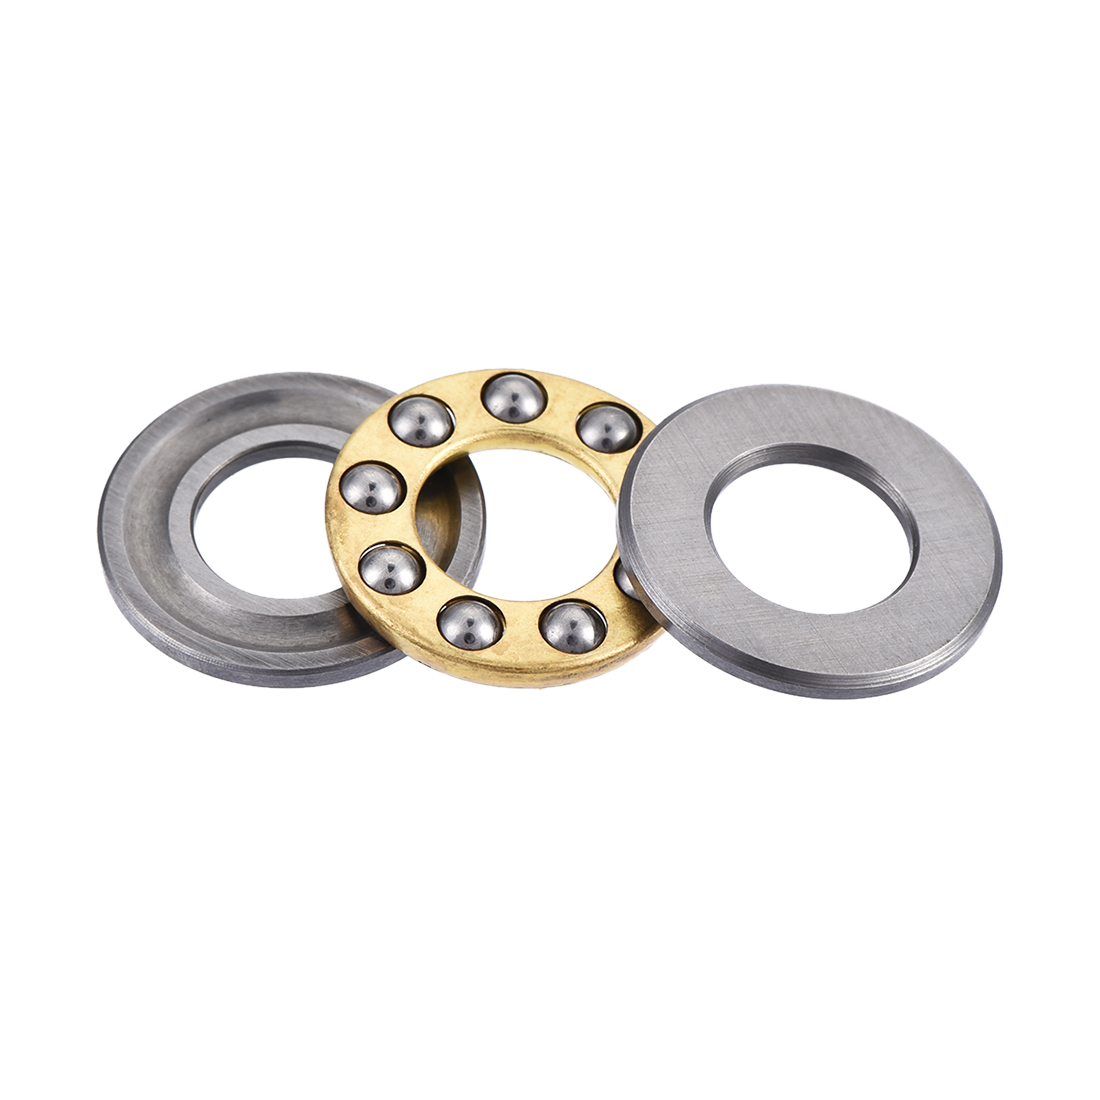 16mm-x-8mm-x-5mm-F8-16-Single-Direction-Axial-Thrust-Ball-Roller-Bearing